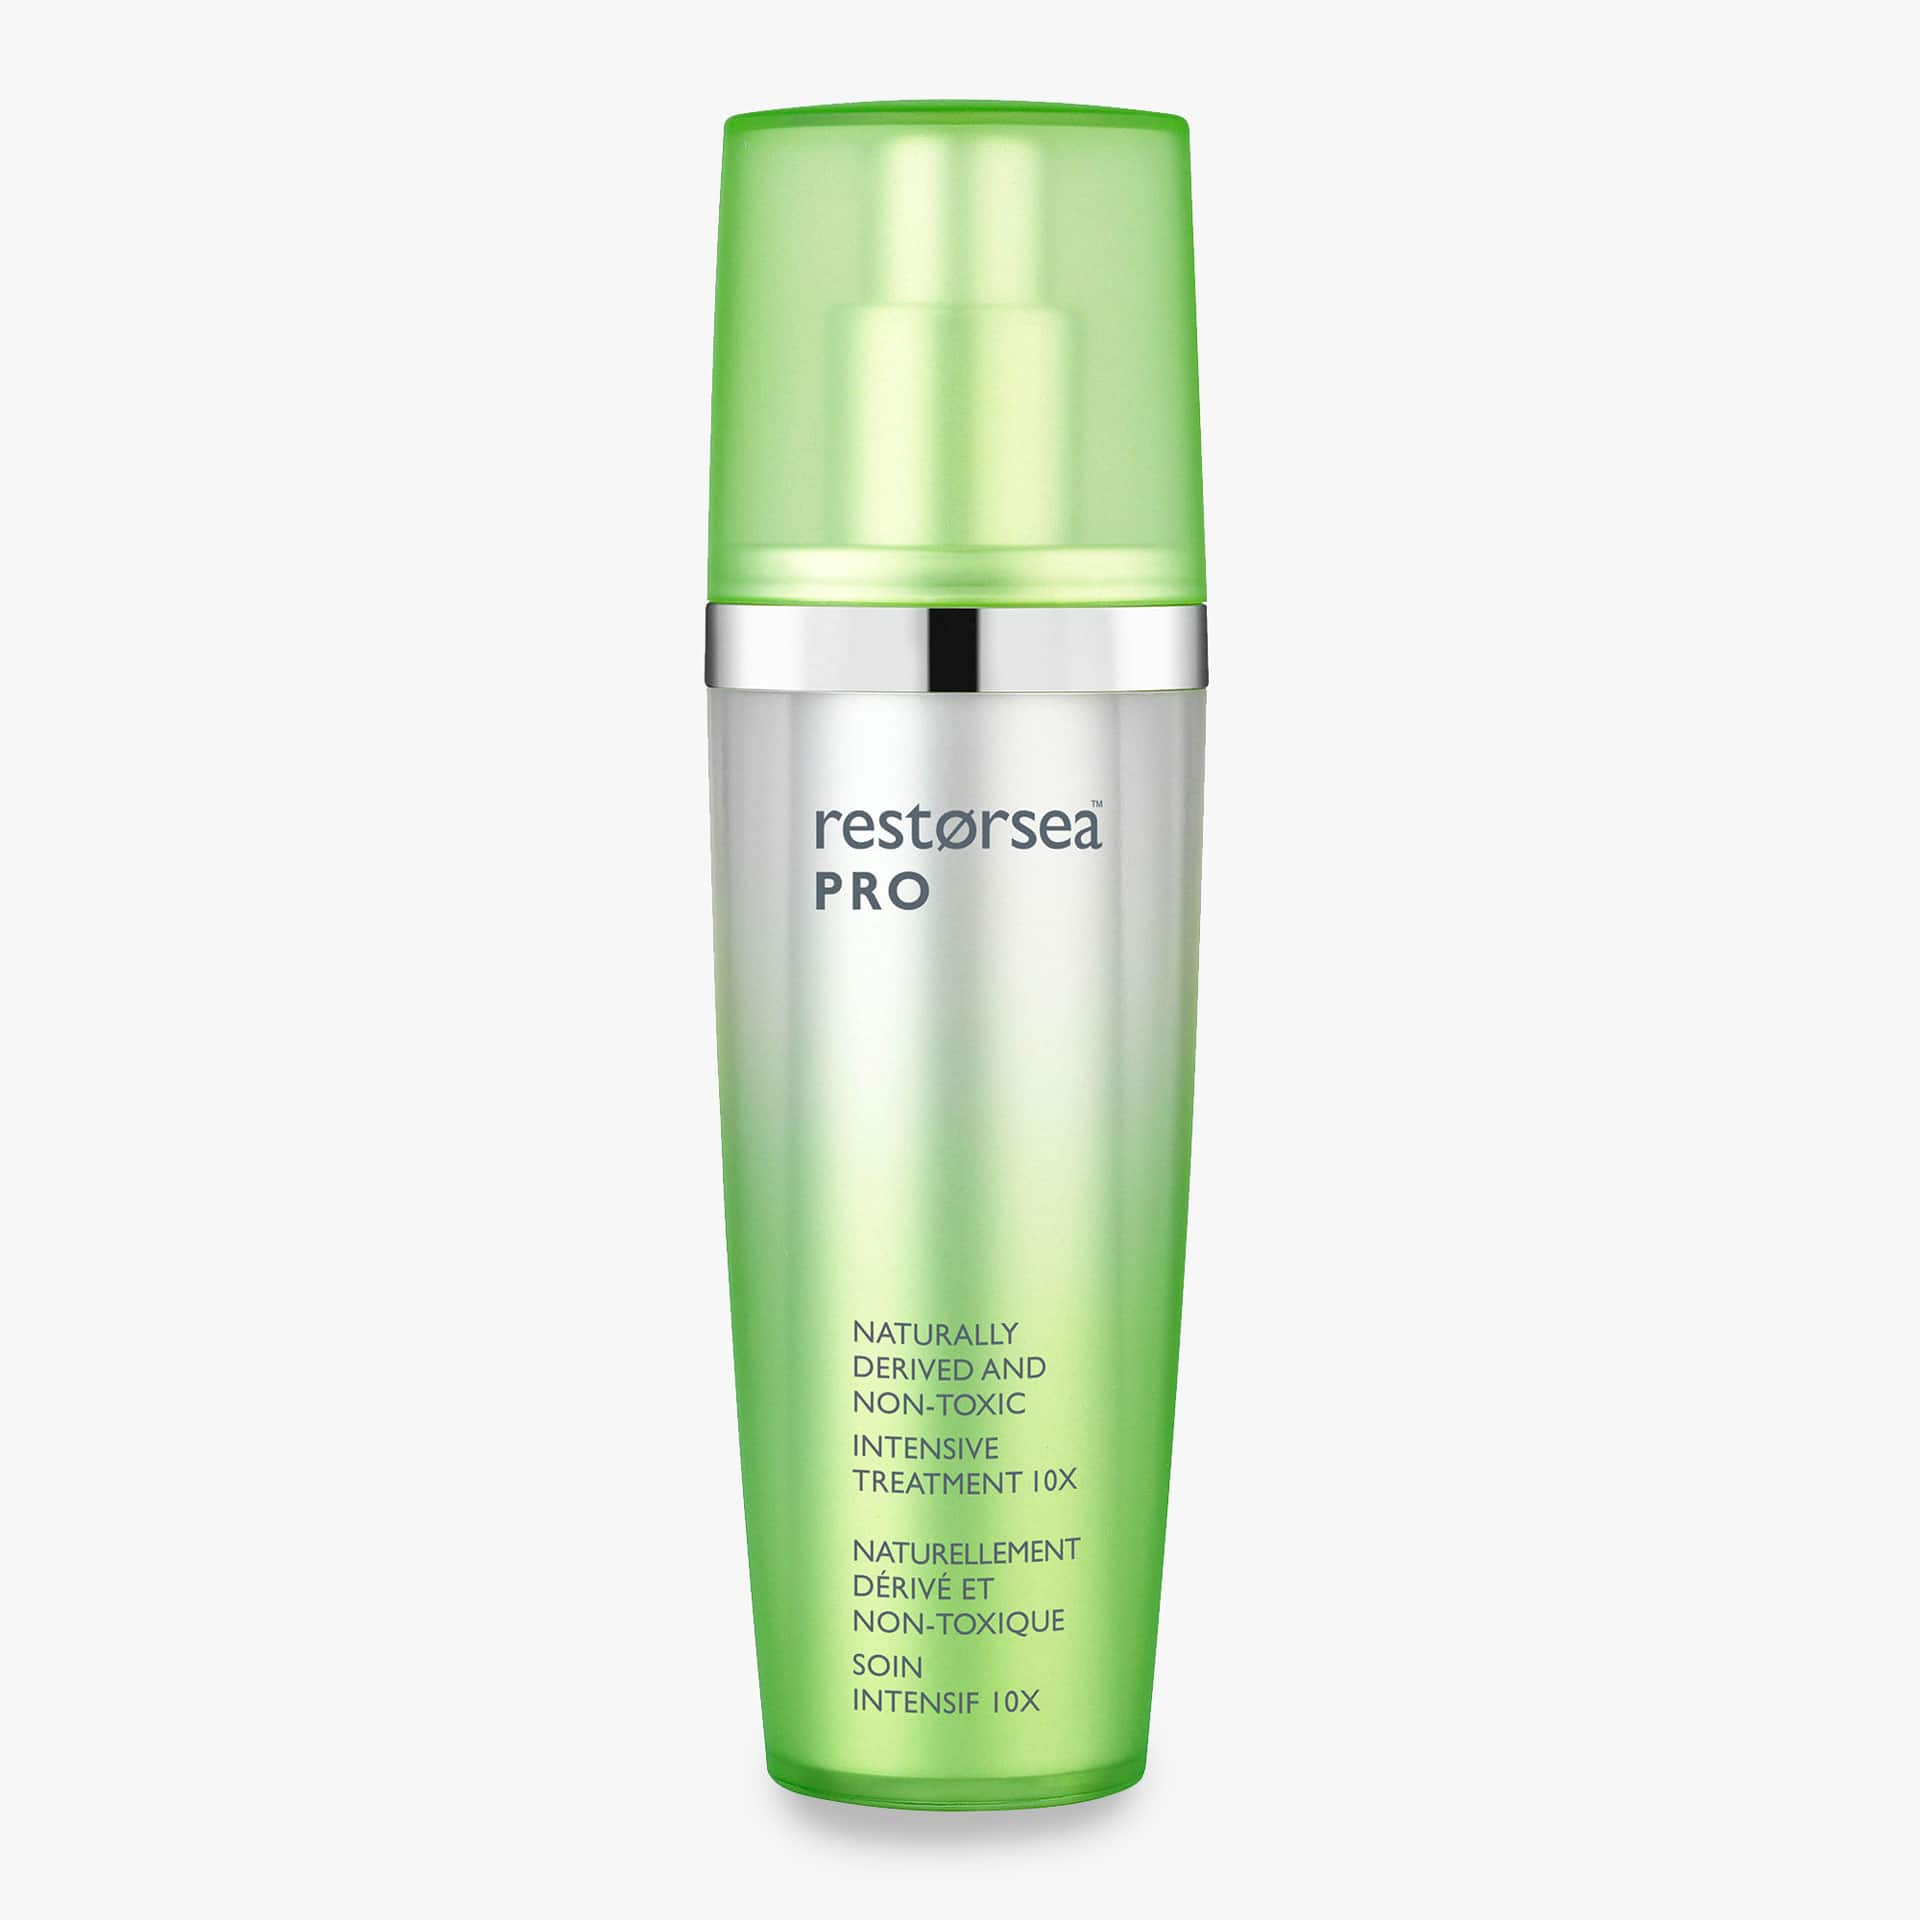 Restorsea PRO Intensive Treatment 10X